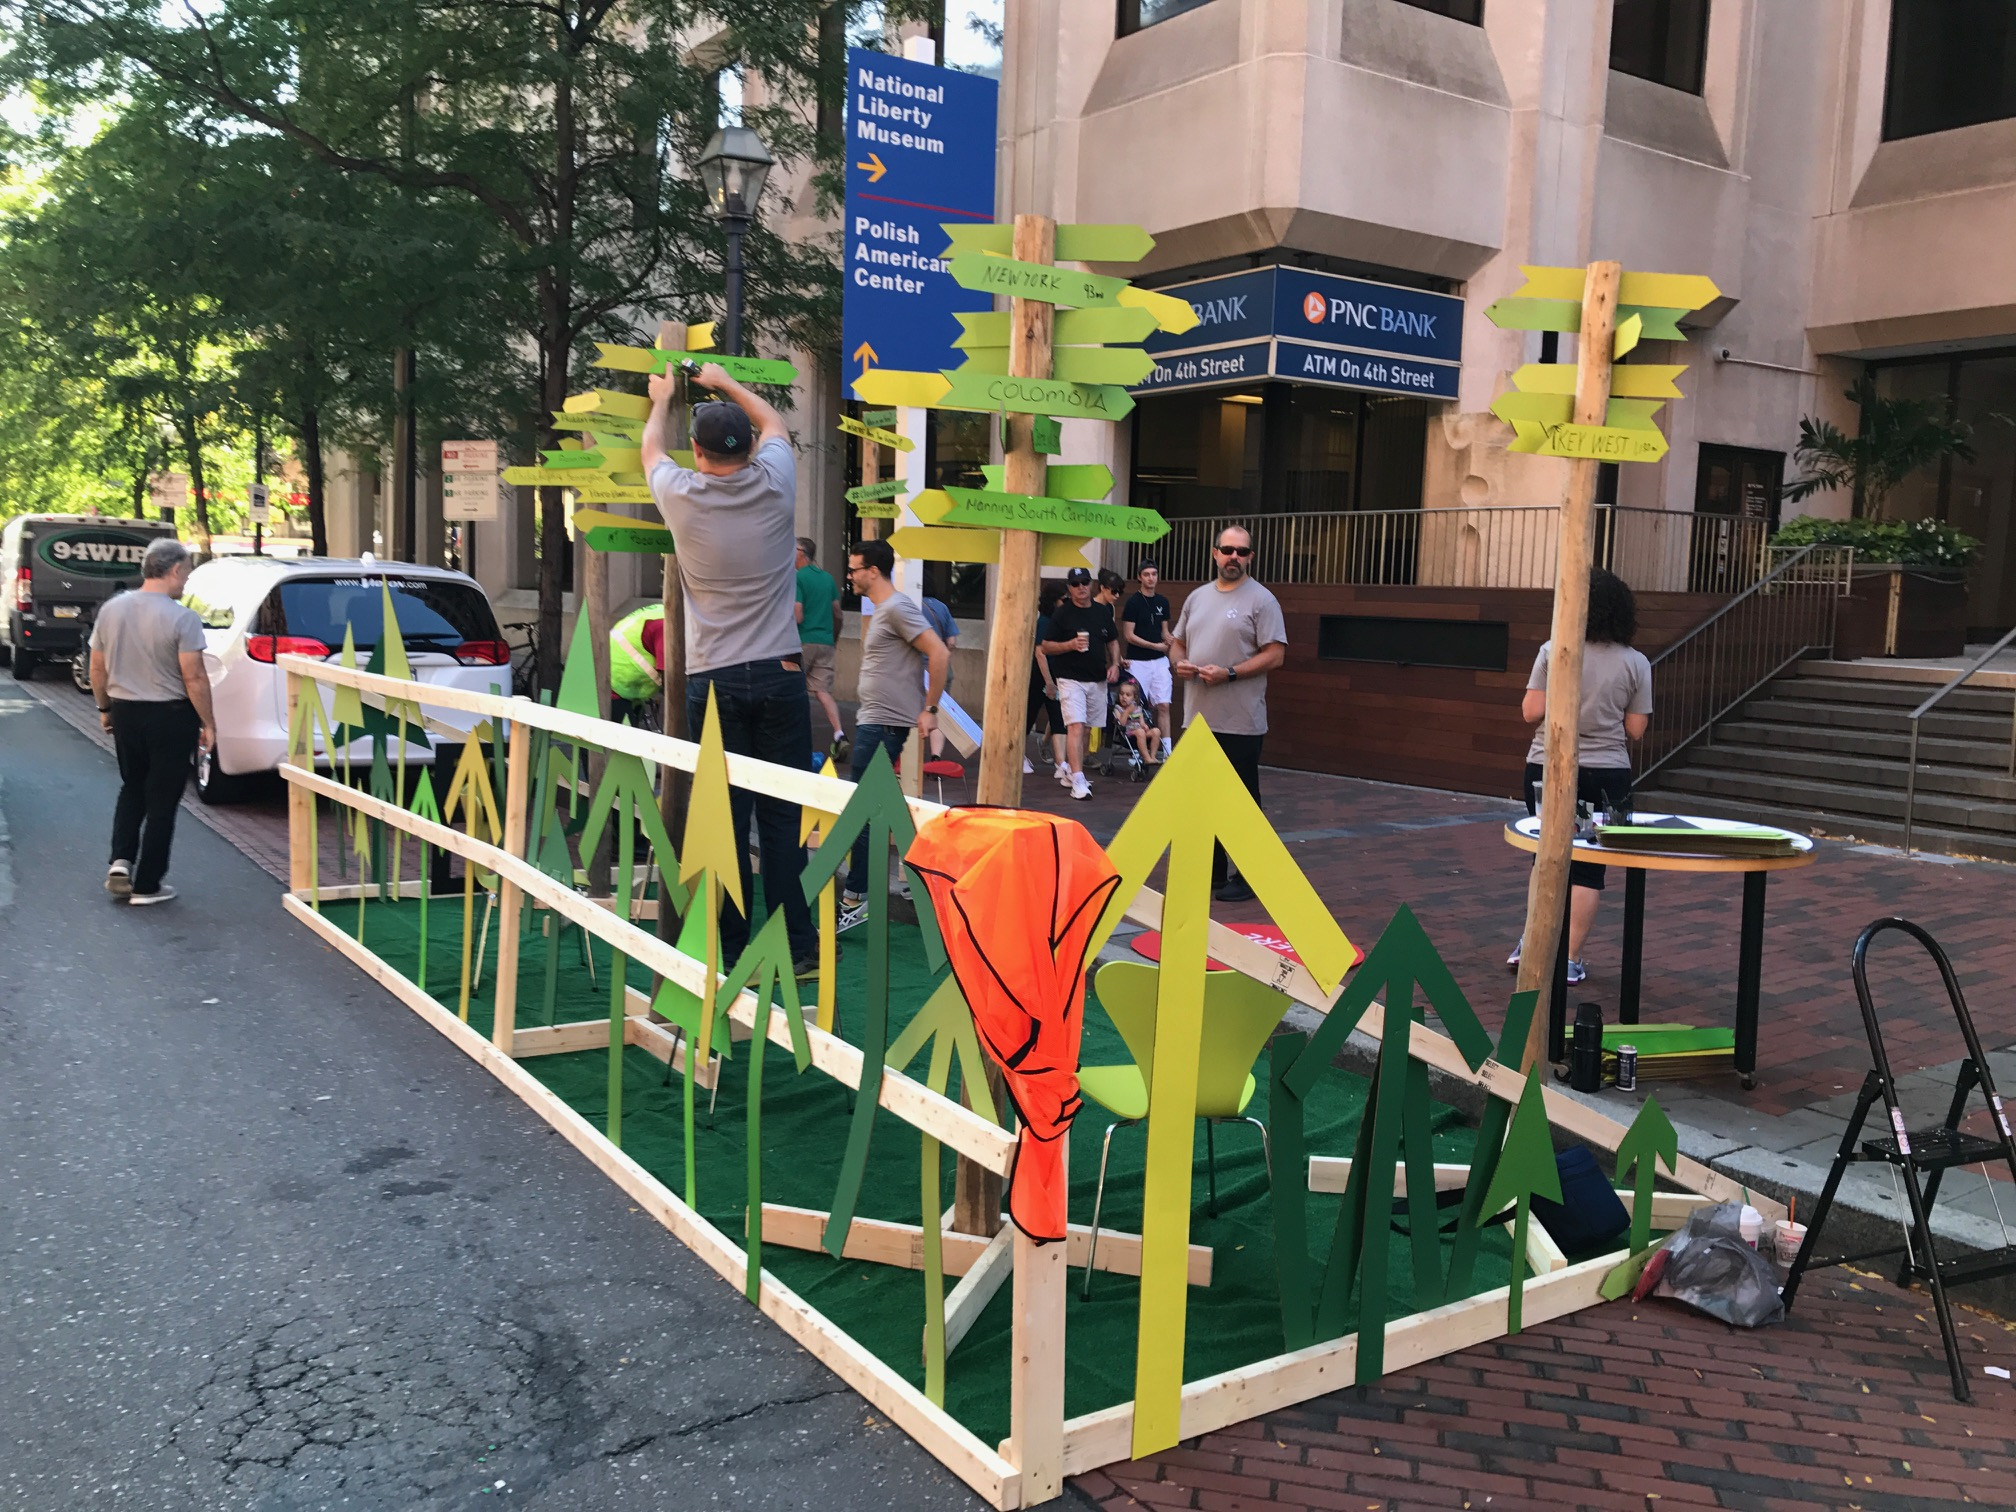 Matt Cavelier, Joe Thomas and Ian Goldberg setting up Cloud Gehshan Placemaking's Where are you from? at Market and 4th on Park(ing) Day 2017